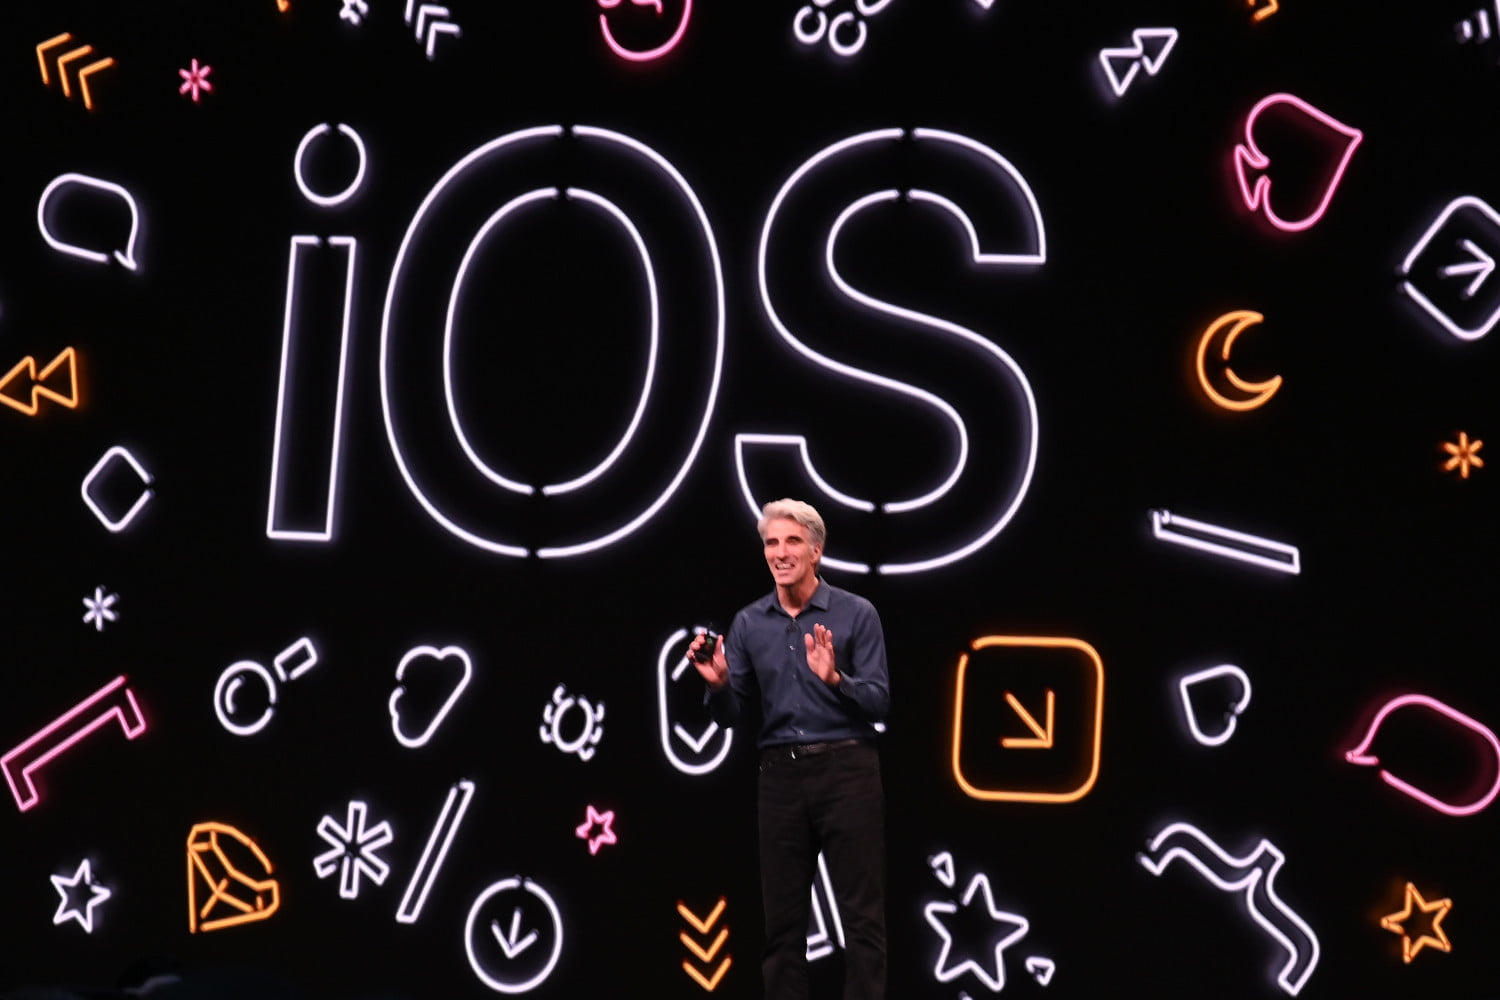 iOS 13: Everything We Know About Apple's Next iPhone OS | Digital Trends